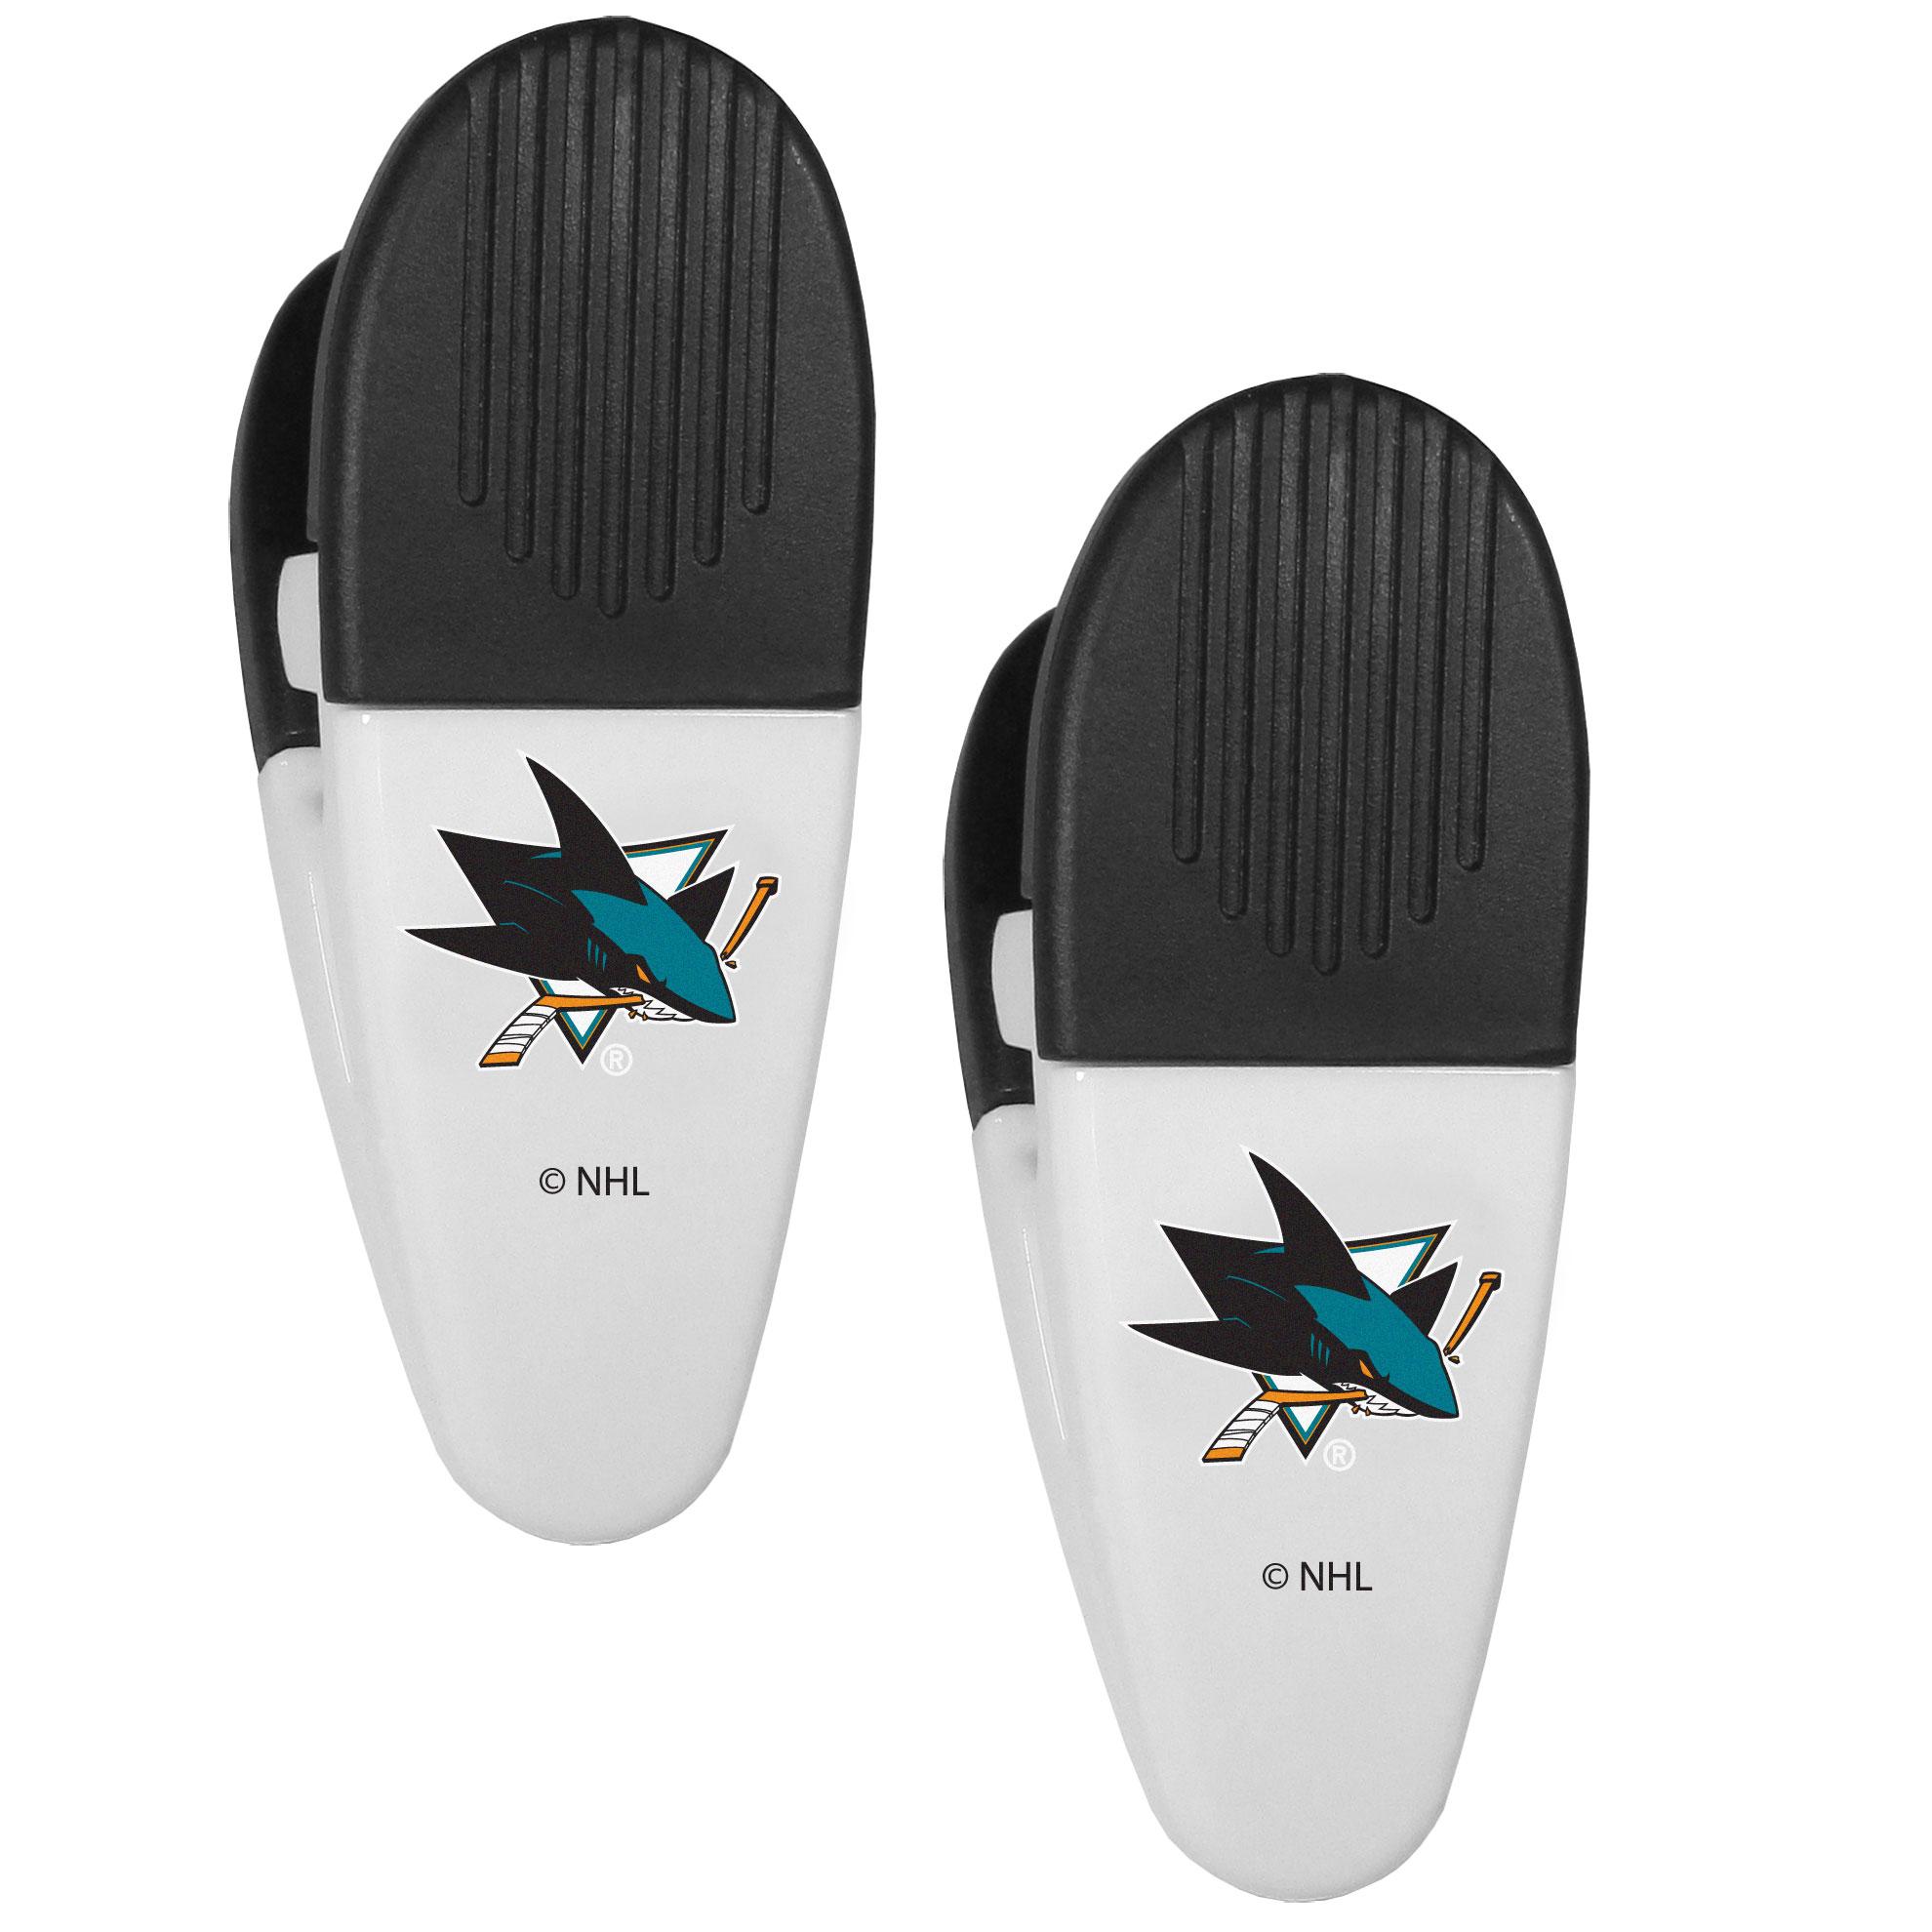 San Jose Sharks Mini Chip Clip Magnets, 2 pk - Our San Jose Sharks chip clip magnets feature a crisp team logo on the front of the clip. The clip is perfect for sealing chips for freshness and with the powerful magnet on the back it can be used to attach notes to the fridge or hanging your child's artwork. Set of 2 magnet clips, each clip is 3.5 inches tall and 1.25 inch wide.